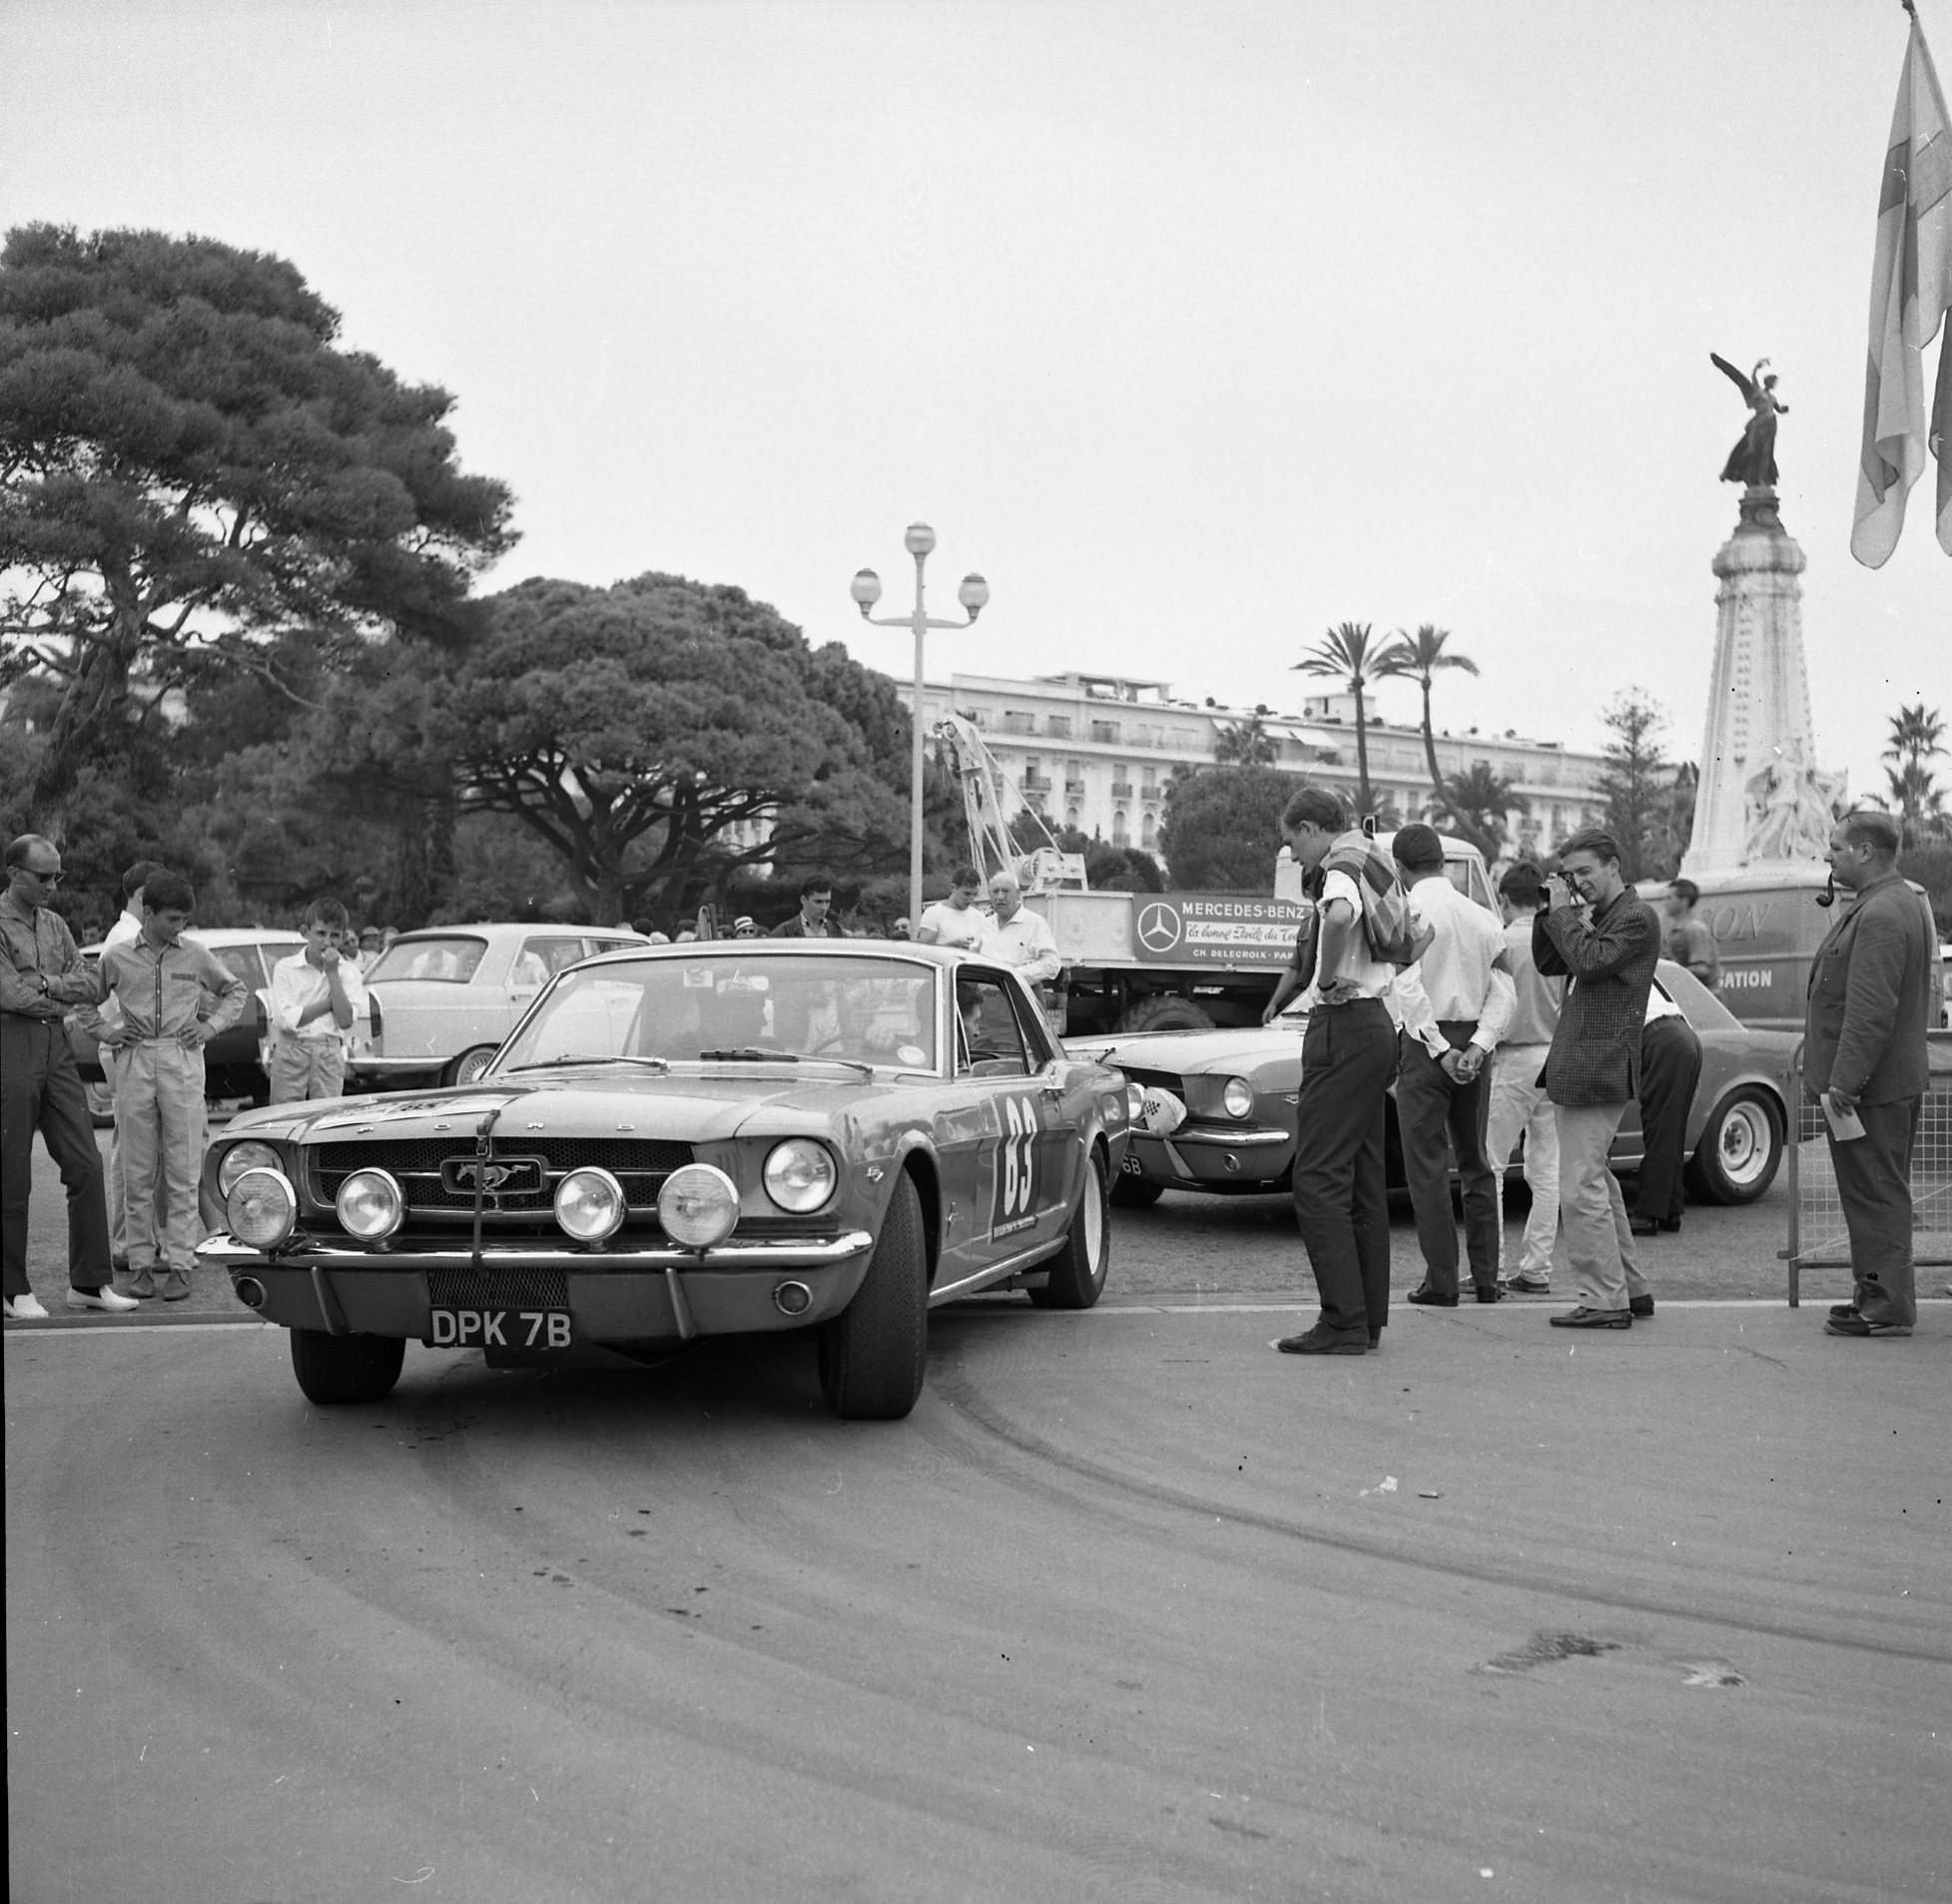 The race-prepped Mustangs attracted much attention and admiration in France.